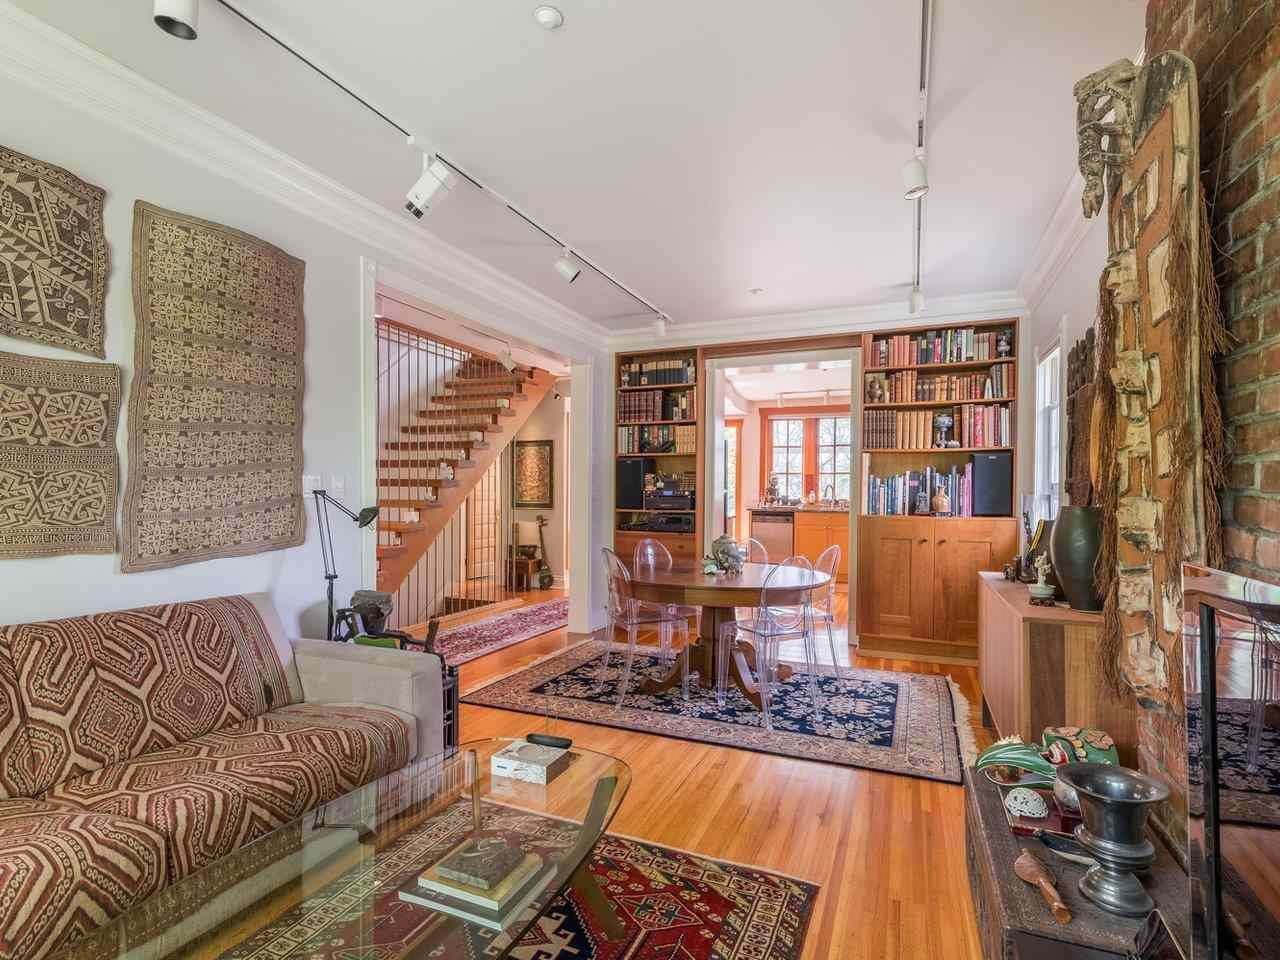 Main Photo: 2556 W 2ND Avenue in Vancouver: Kitsilano House for sale (Vancouver West)  : MLS®# R2593228